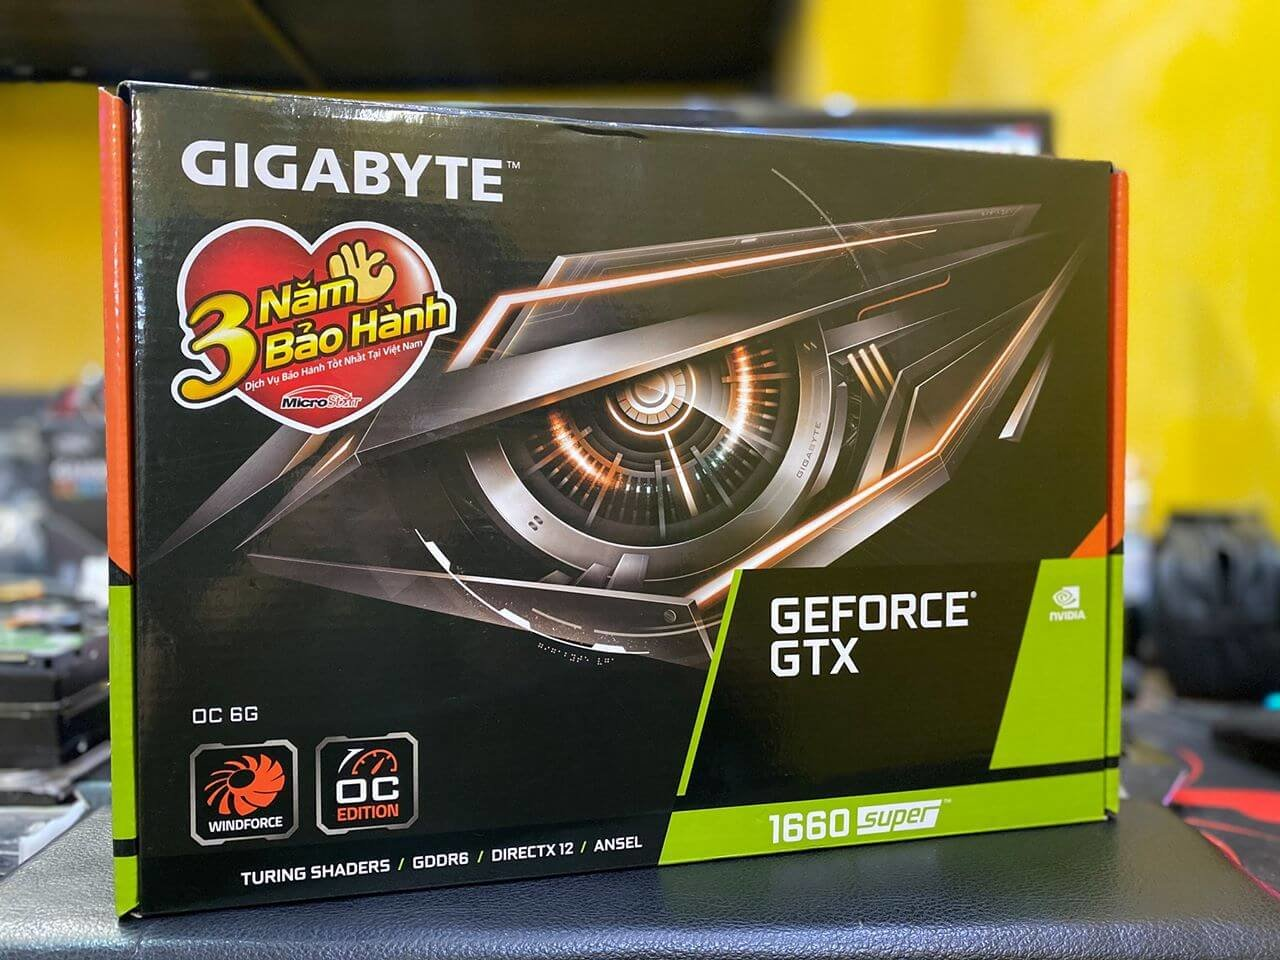 Gigabyte 1660 Super Oc 6gb